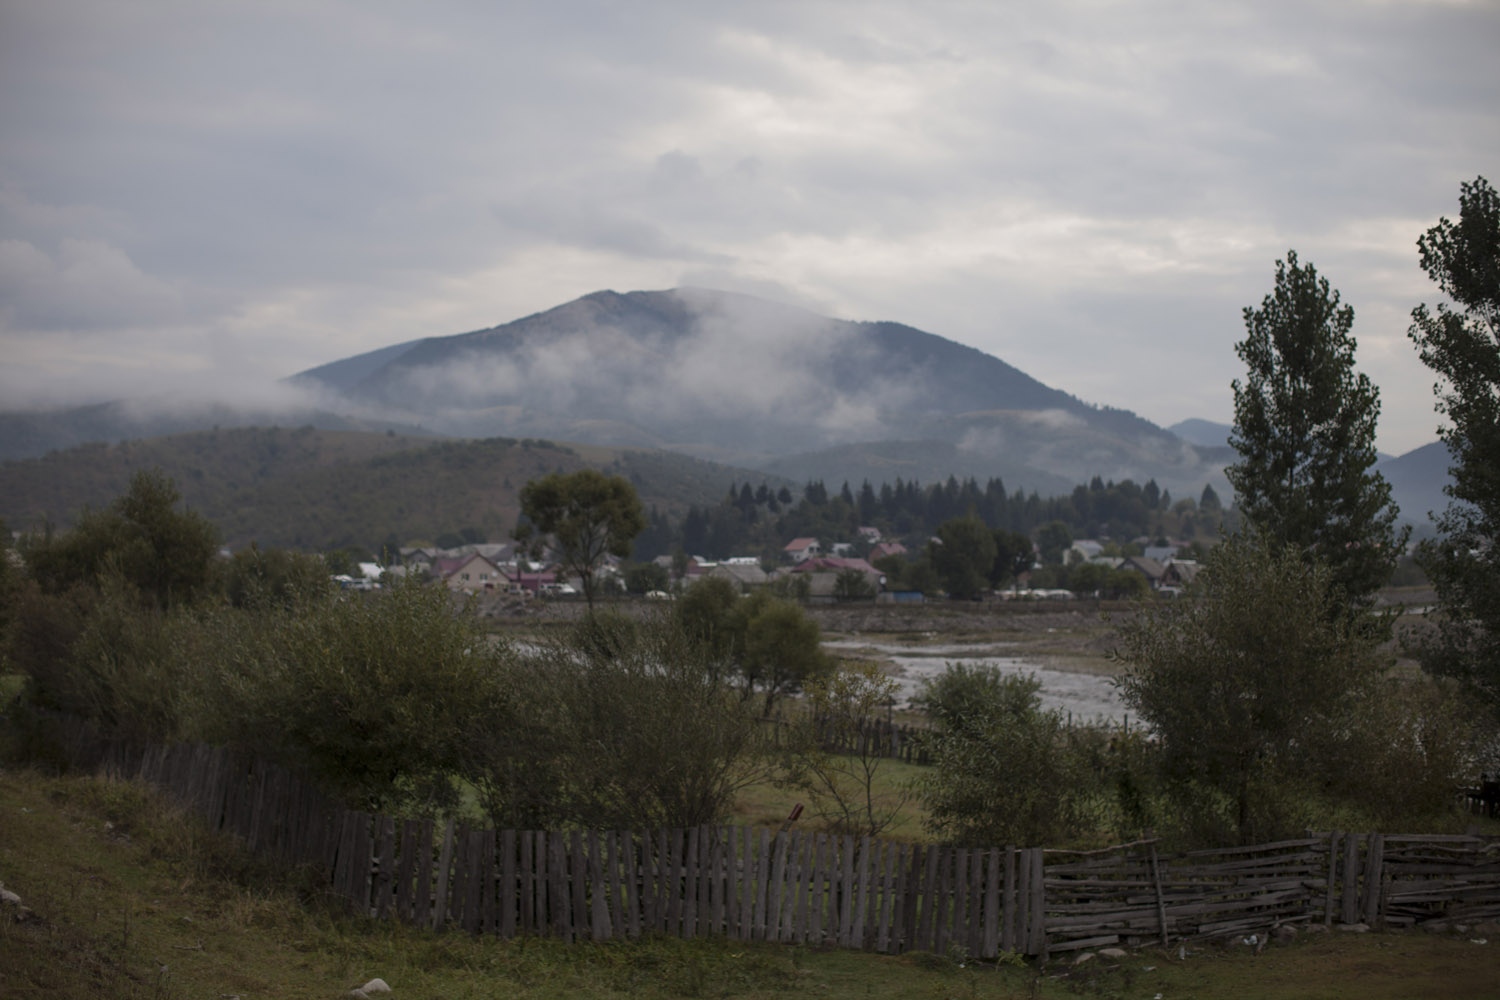 The village of Kolochava used to be home to a a few hundred Jews, living in wooden houses by the river. It all came to an end on a bright morning in late May 1944, when a column of Hungarian gendarmes drove into the village, with orders to take all the Jews away.